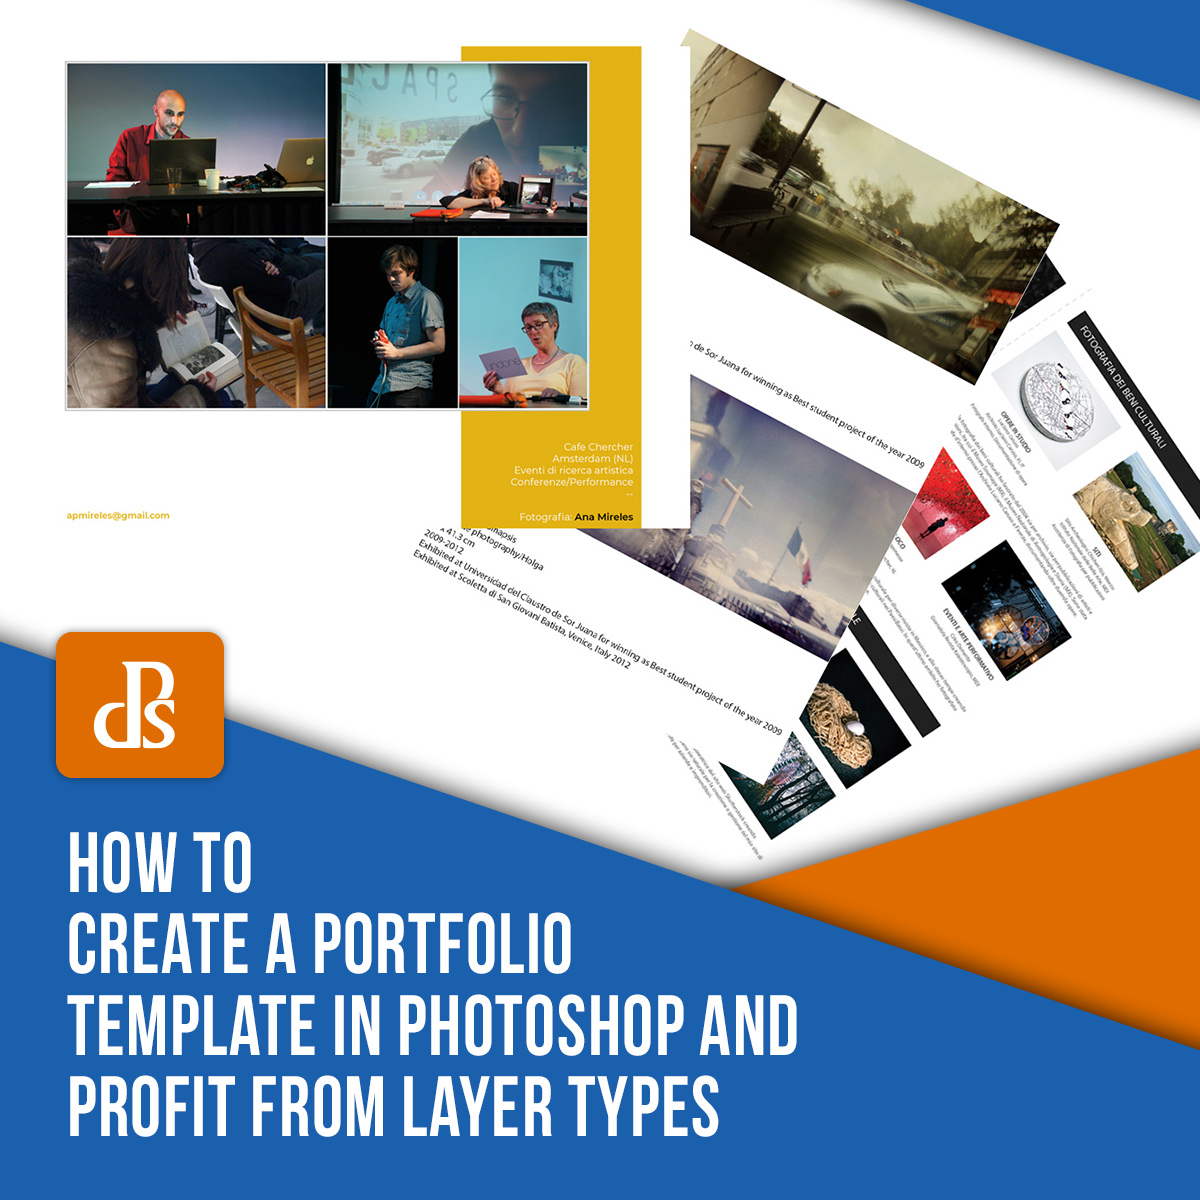 Create-a-Portfolio-Template-in-Photoshop